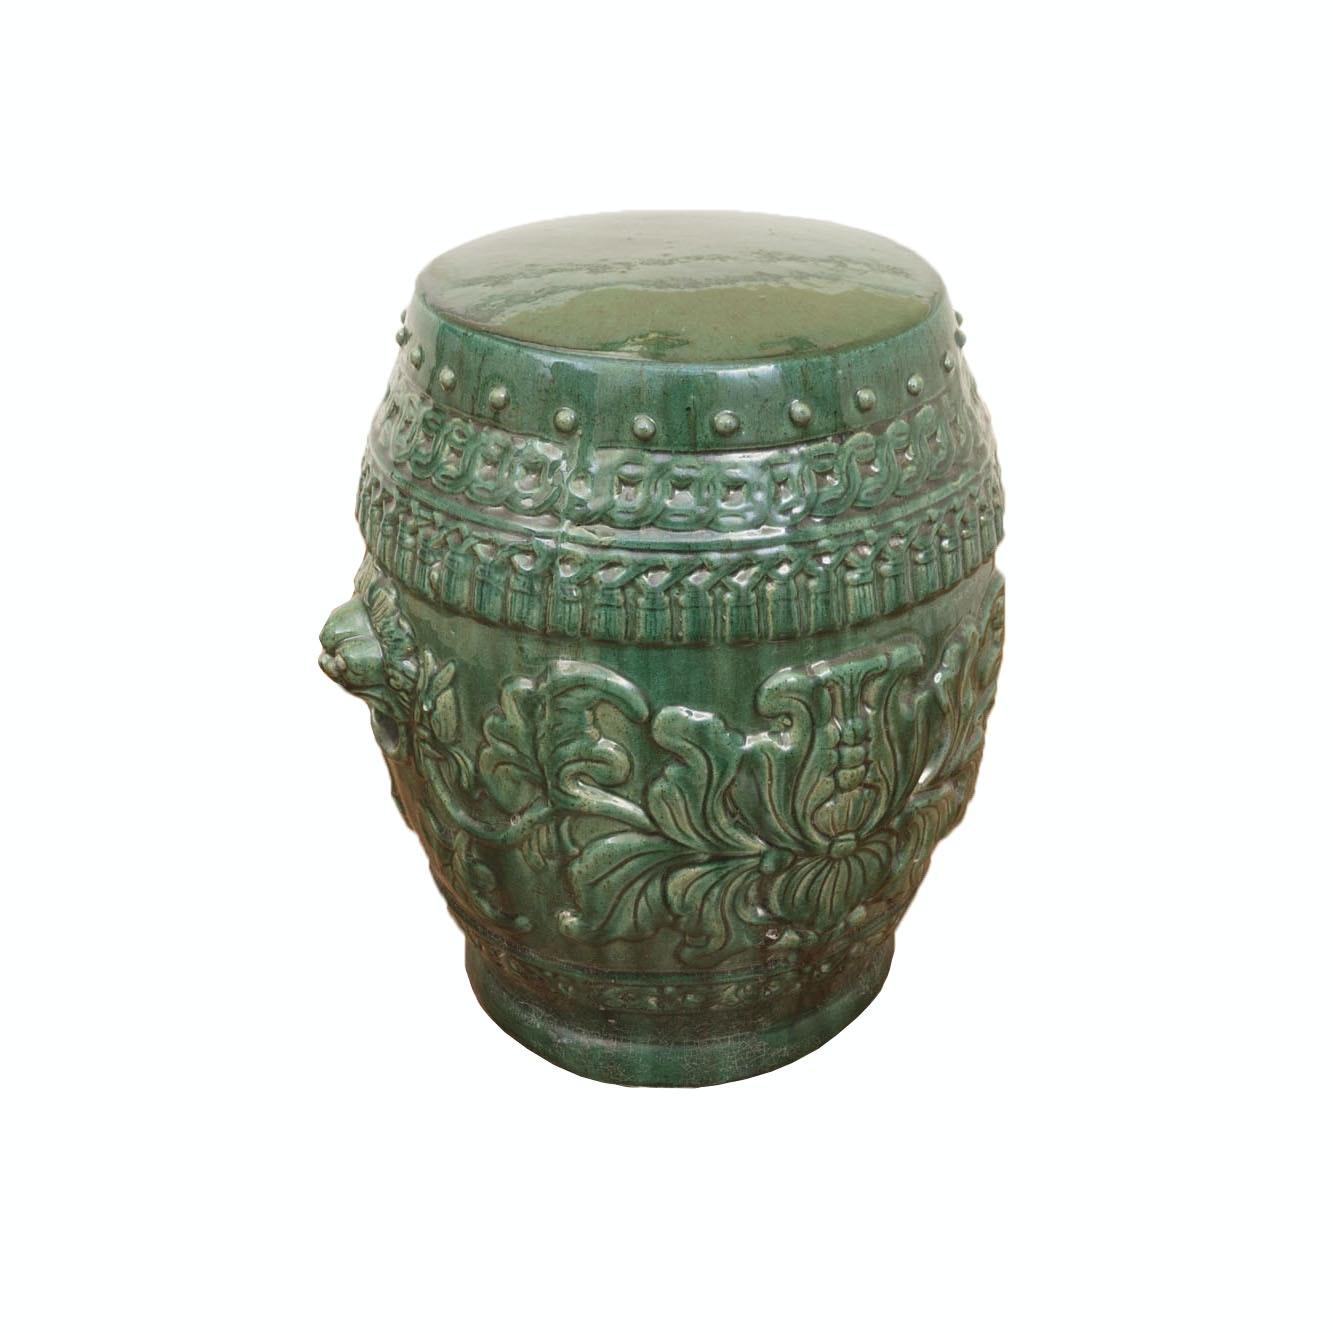 Large Decorative Green Ceramic Garden Stool ...  sc 1 st  Everything But The House & Large Decorative Green Ceramic Garden Stool : EBTH islam-shia.org